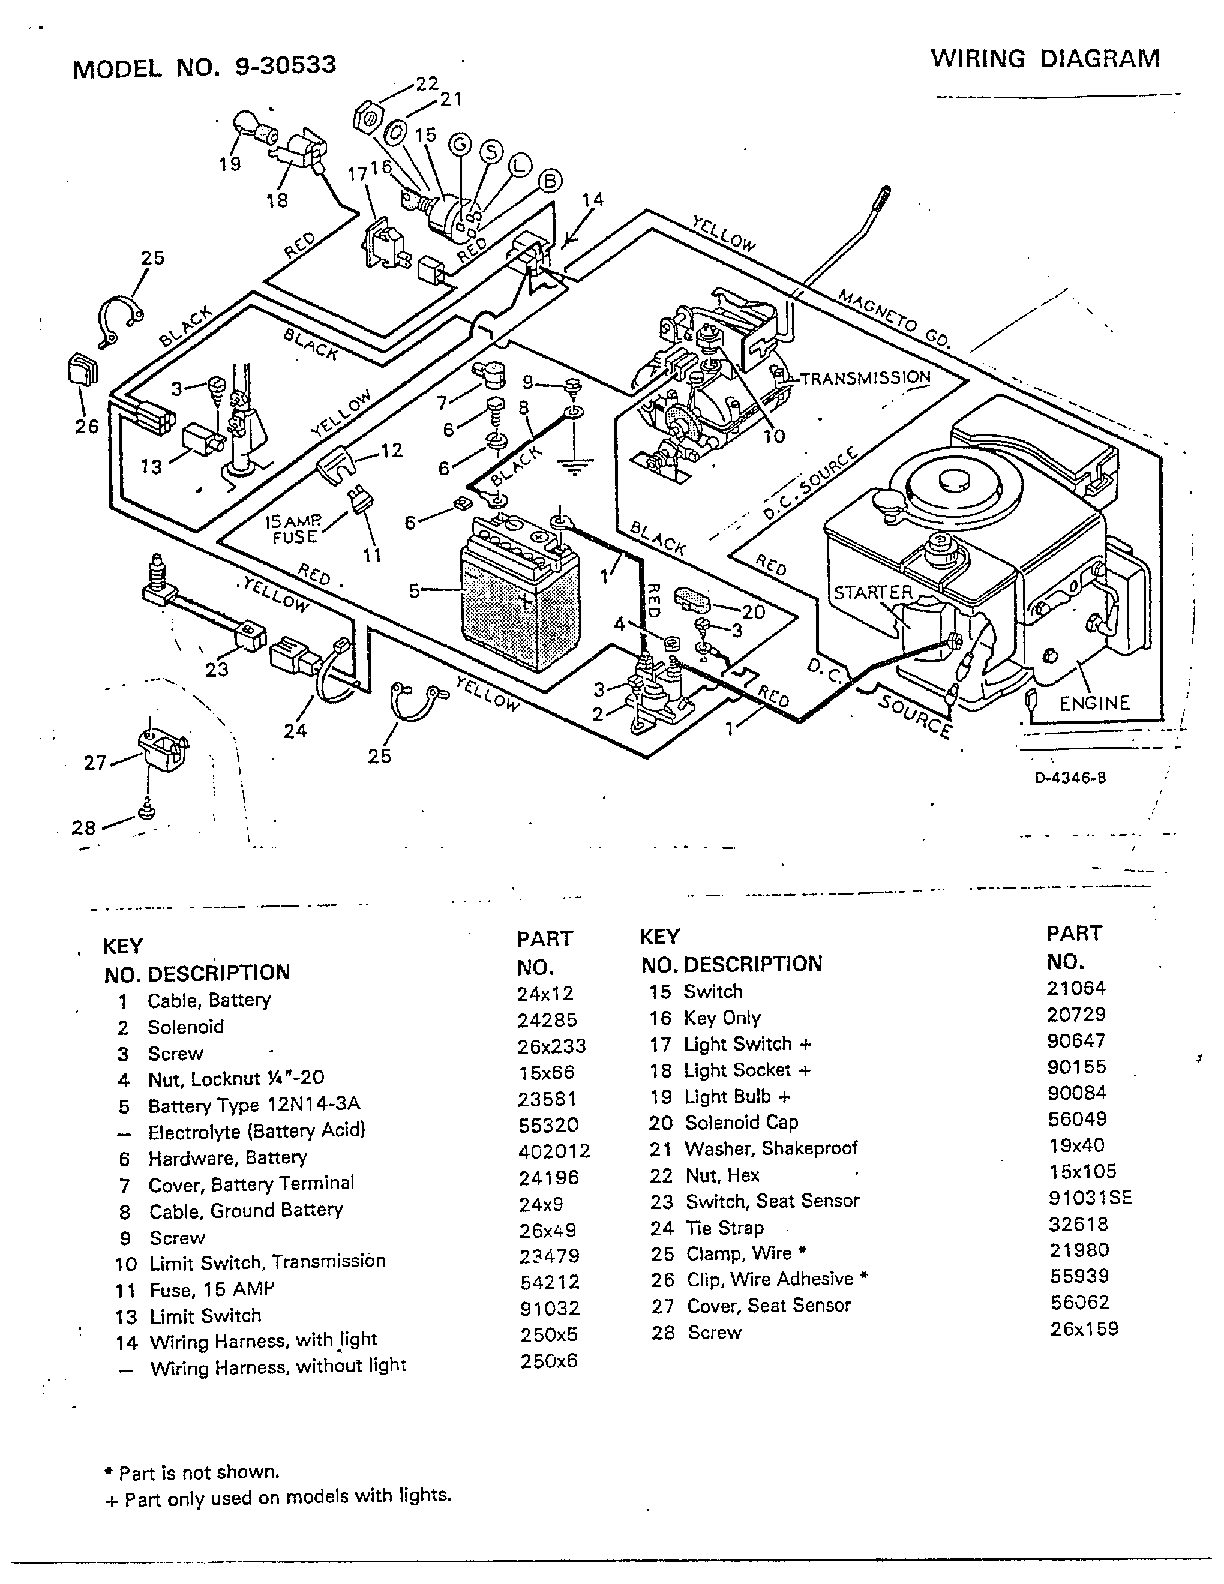 WL000265 00013?resize=665%2C861 electrical wiring diagram murray riding mower model 405011x92a  at webbmarketing.co